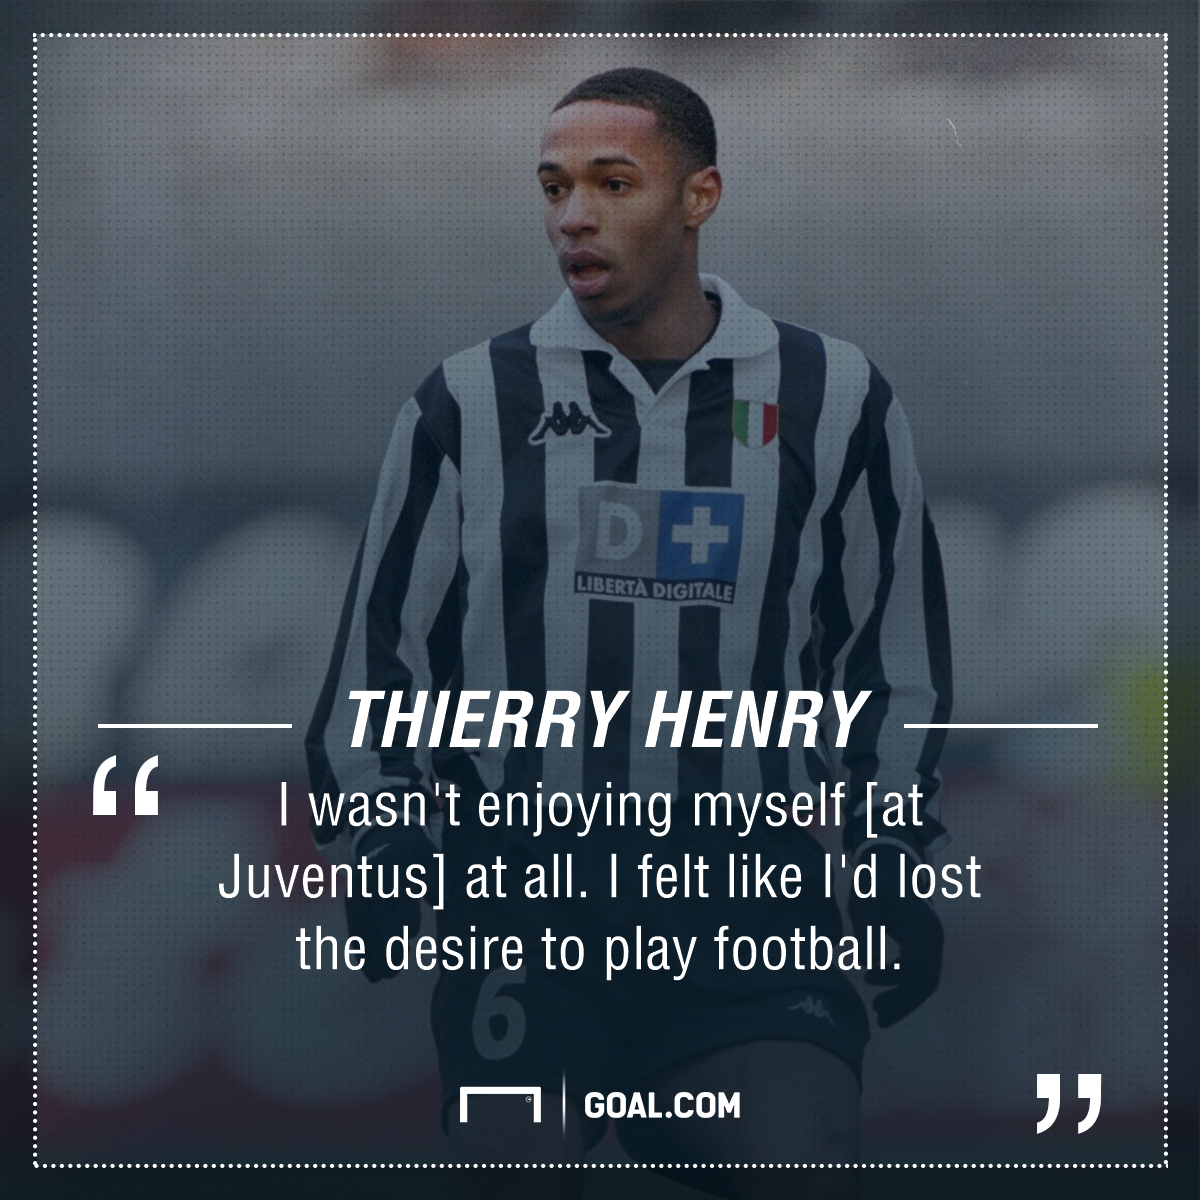 Thierry Henry Juventus PS